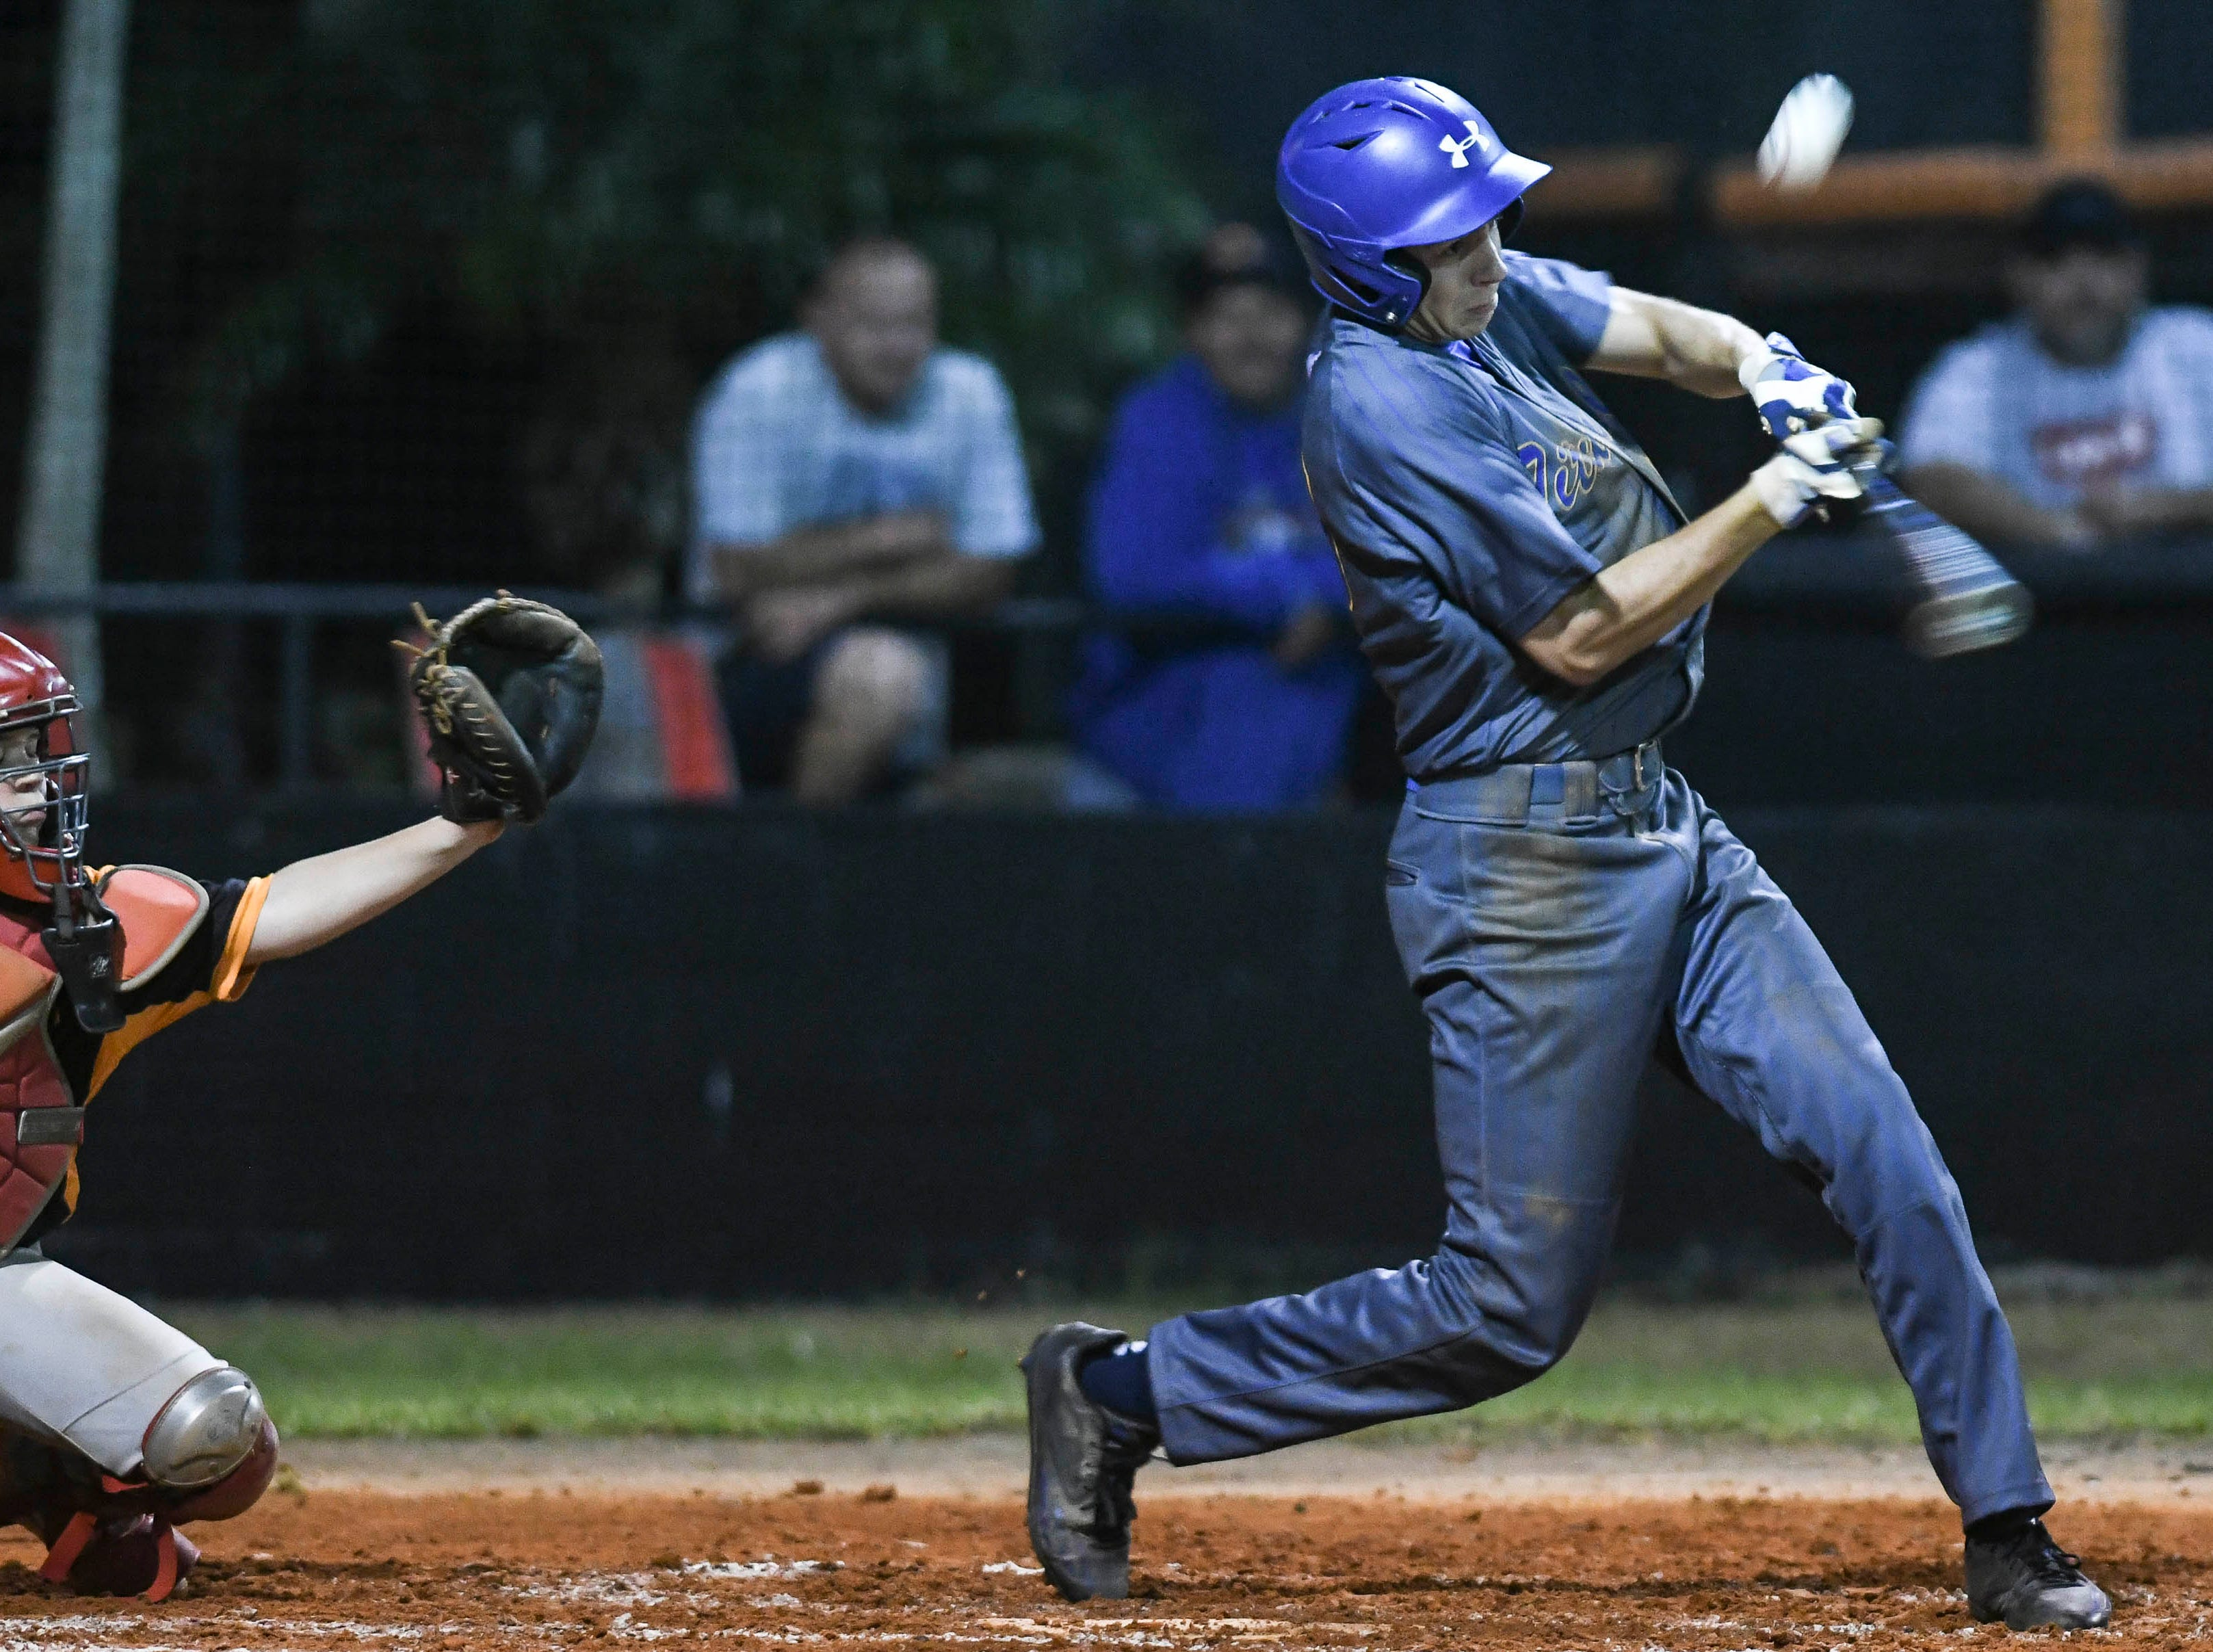 Roc Irlbeck of Titusville fouls off a pitch during Friday's game against Cocoa.